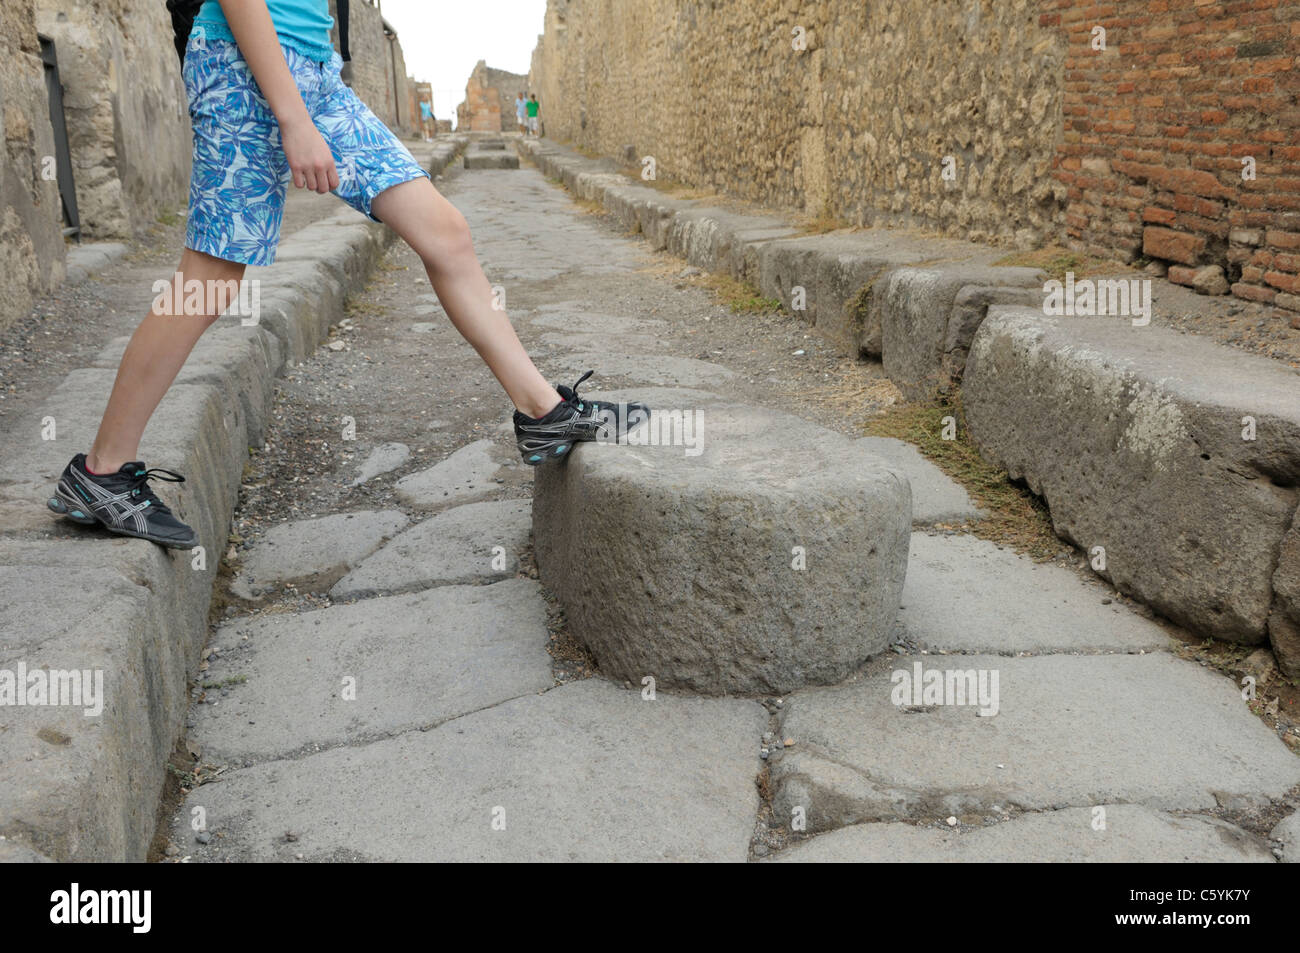 Crossing a street at Pompeii.  The large stones helped citizens cross sloppy roads while also allowing mule carts - Stock Image